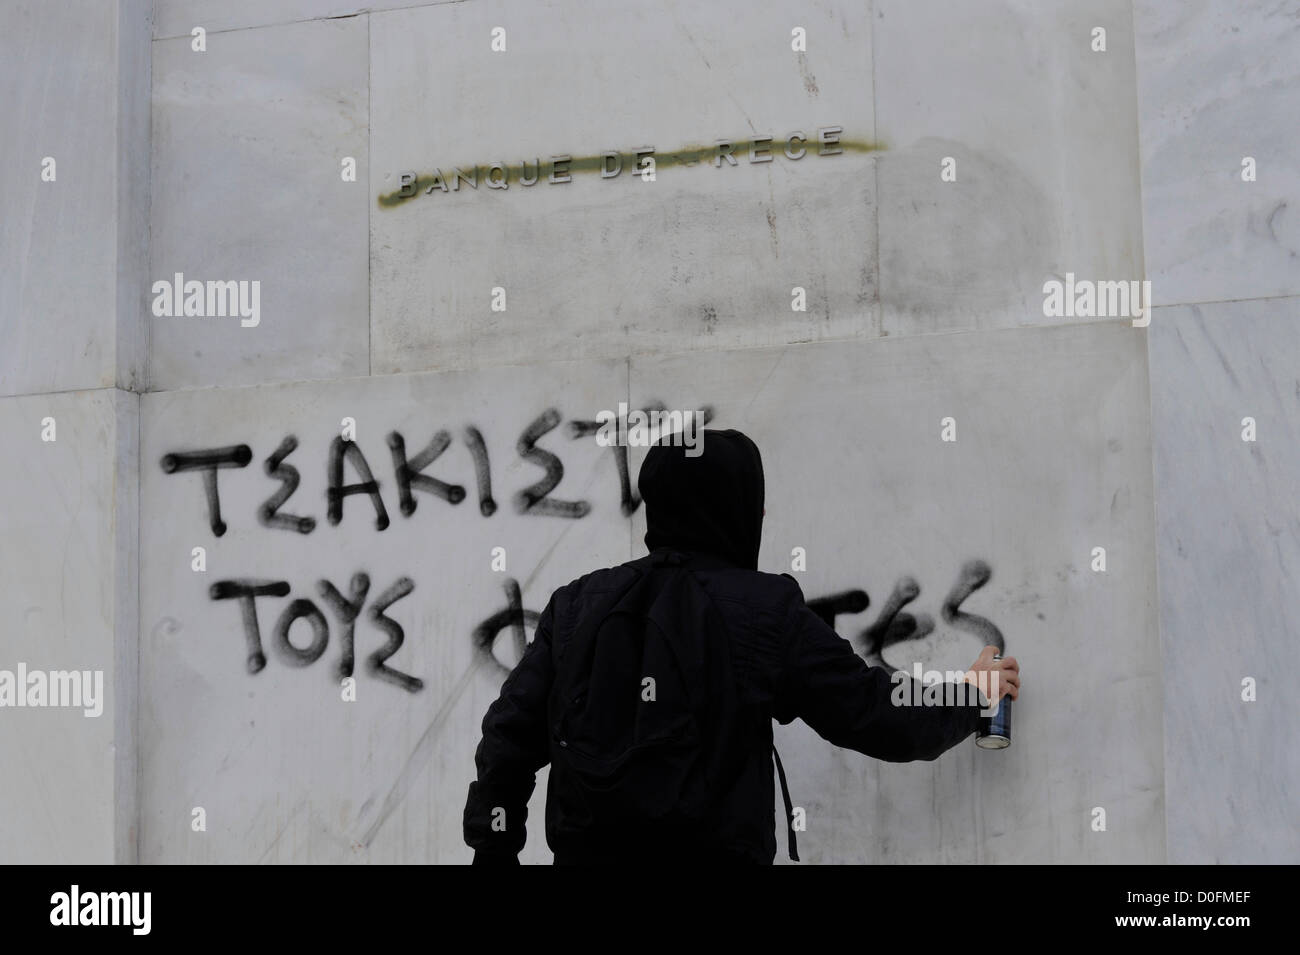 "A masked protester sprayed the words ""crushed the fascists"" on the wall of the Banque de Grece during an anti-fascist Stock Photo"